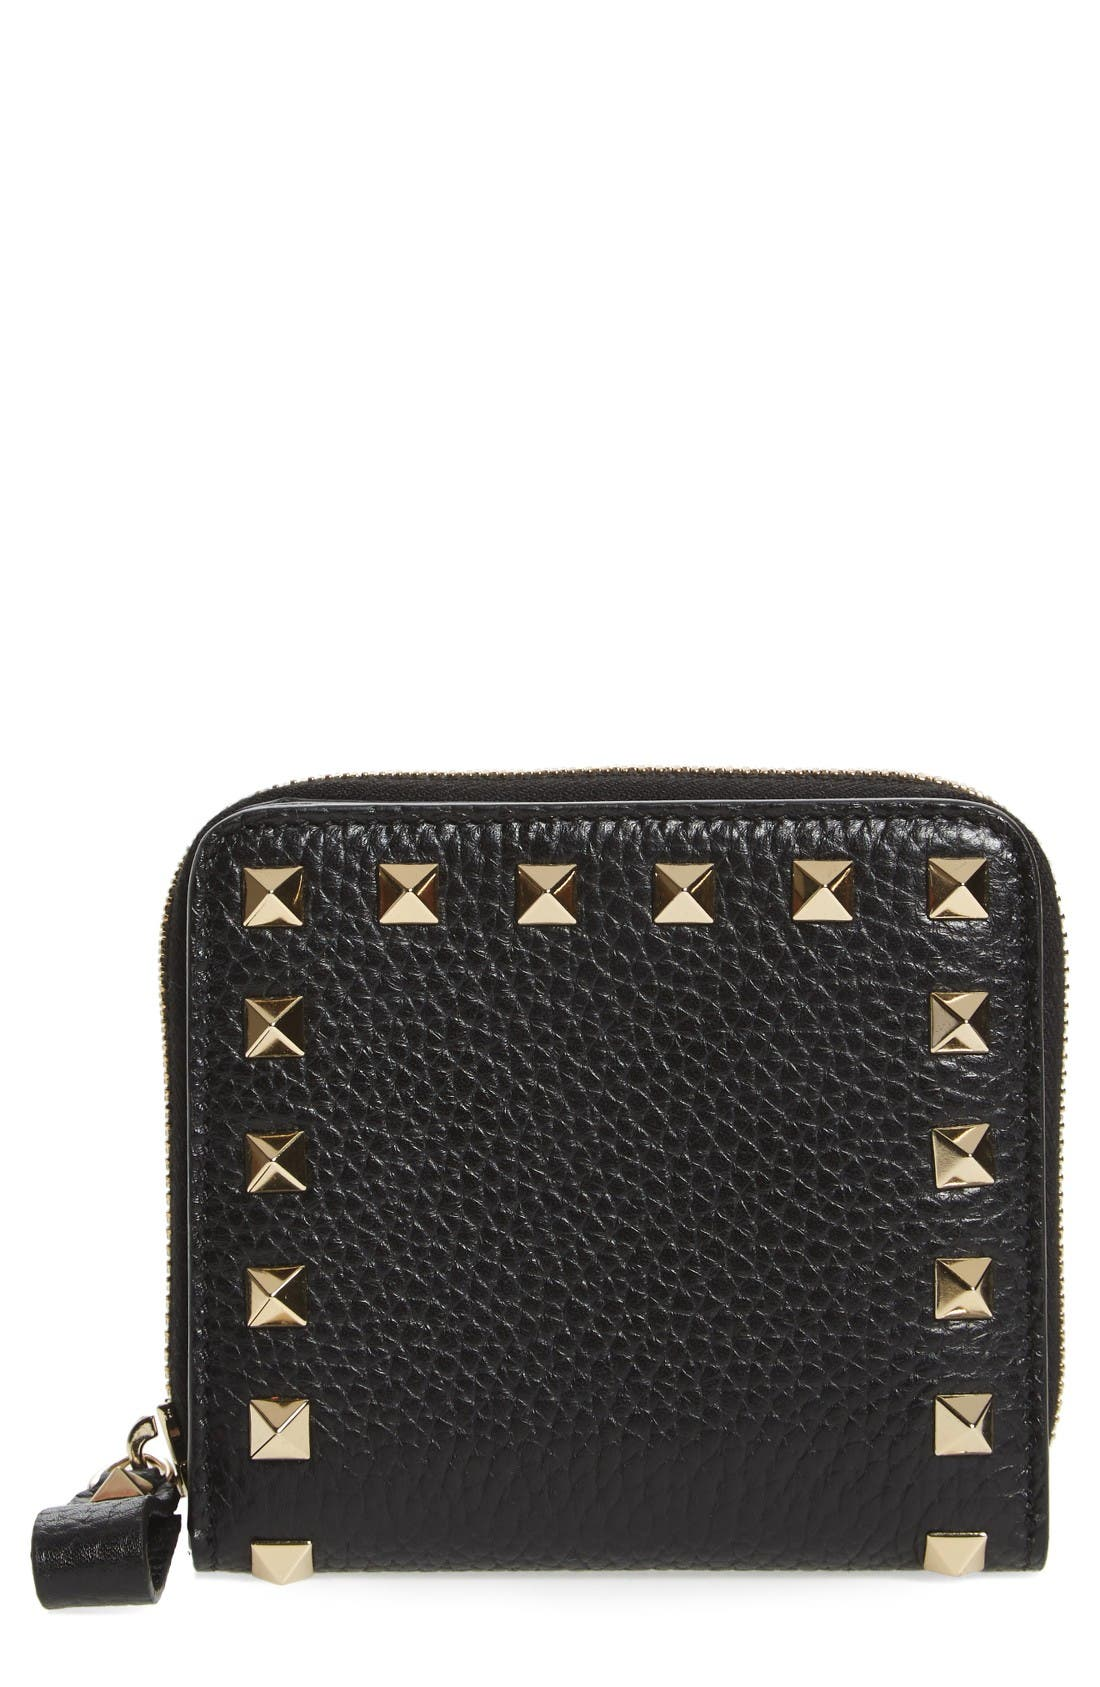 Valentino Rockstud Lambskin Leather Zip Around Wallet